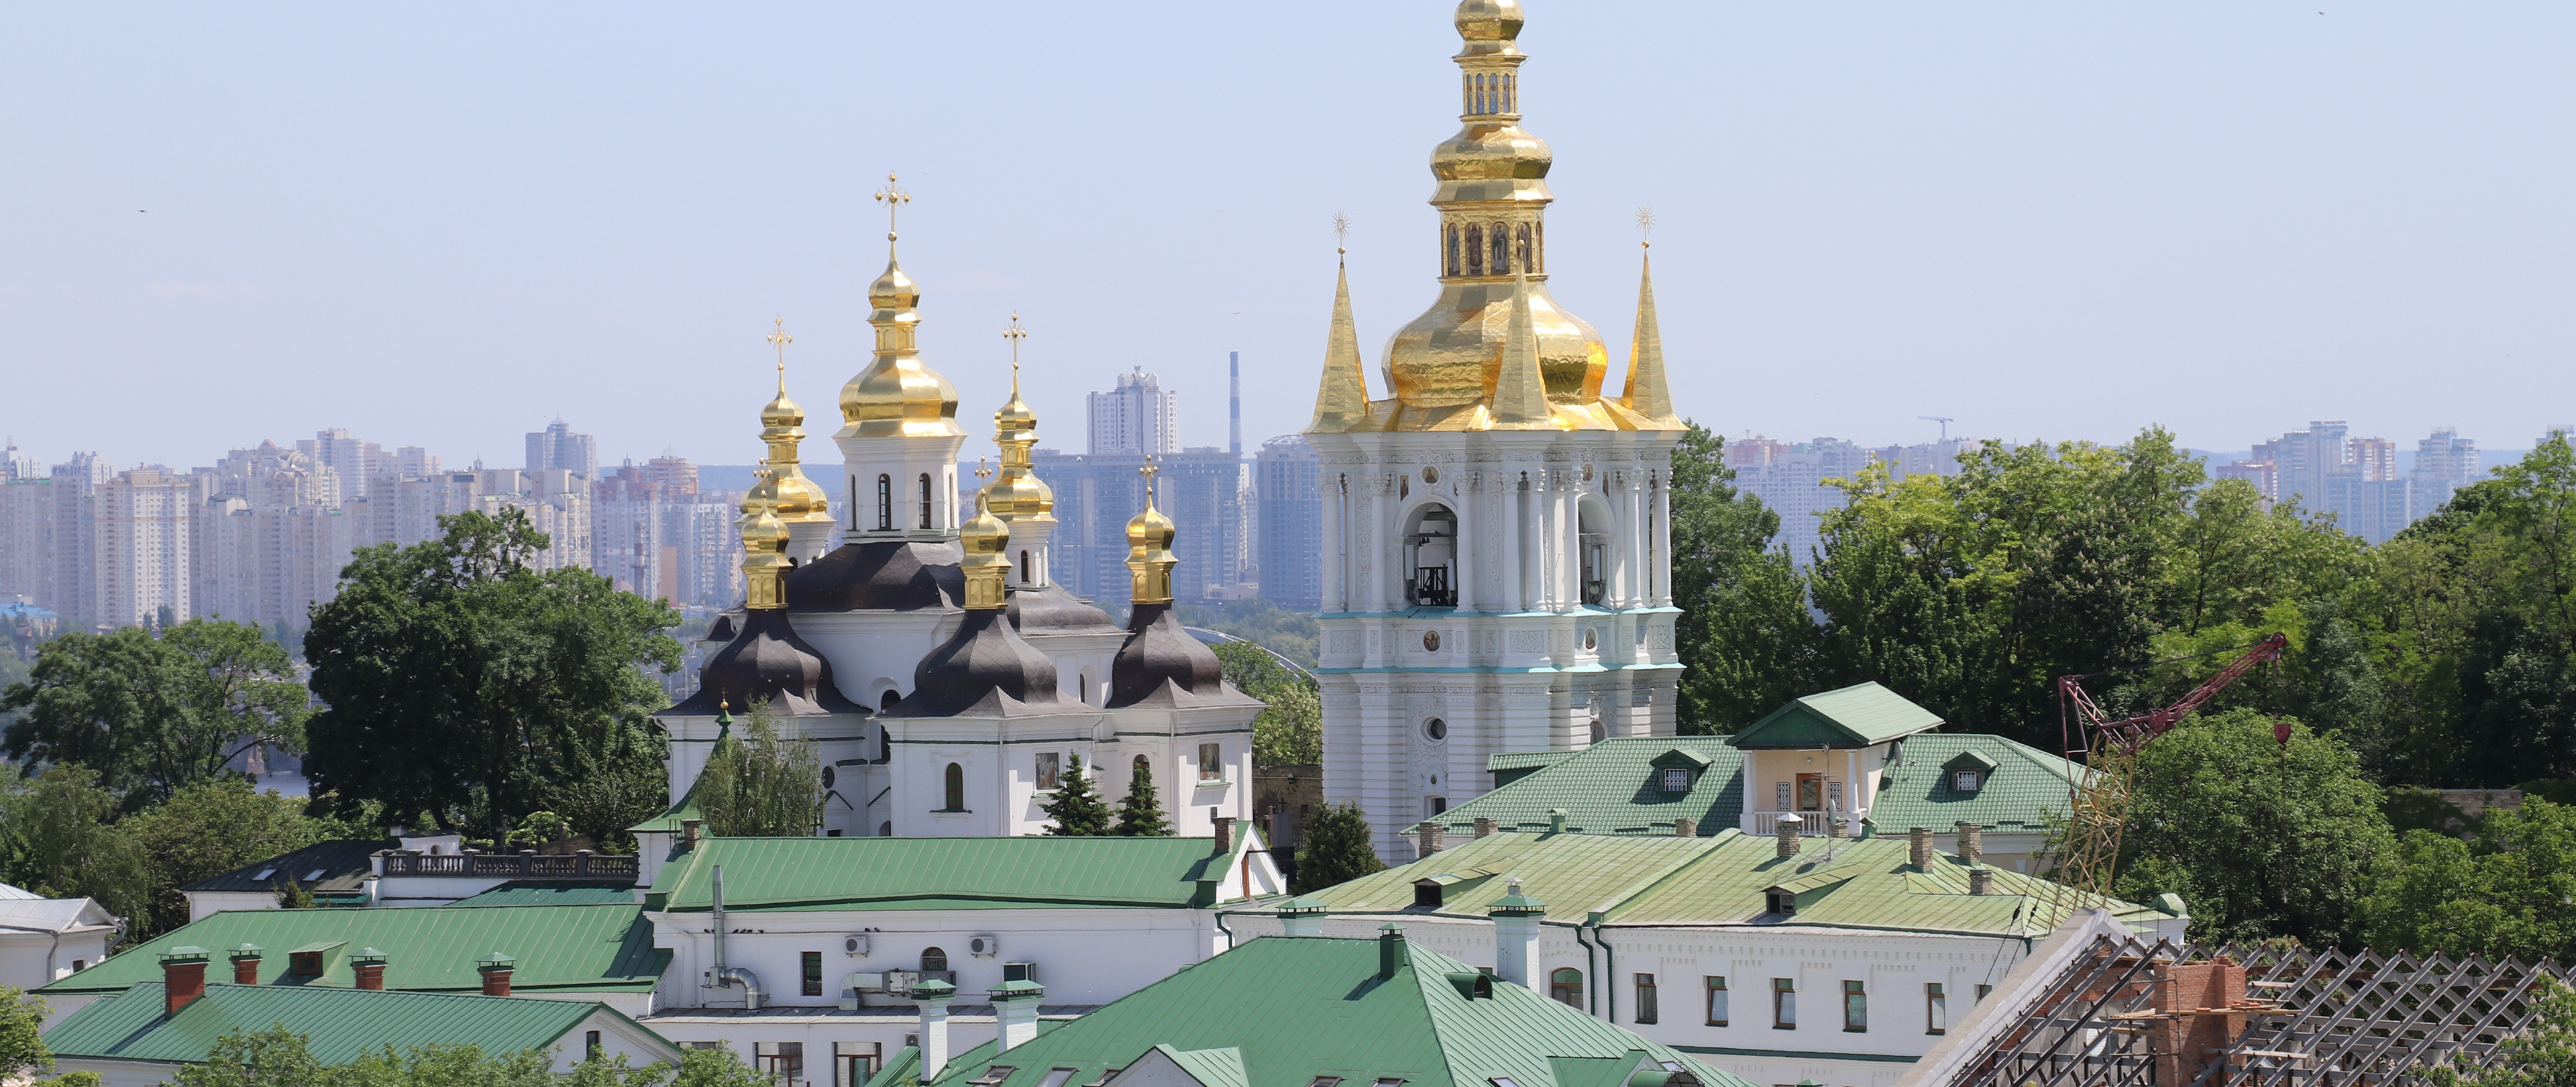 Planning on visiting Kyiv? Here's what you need to know